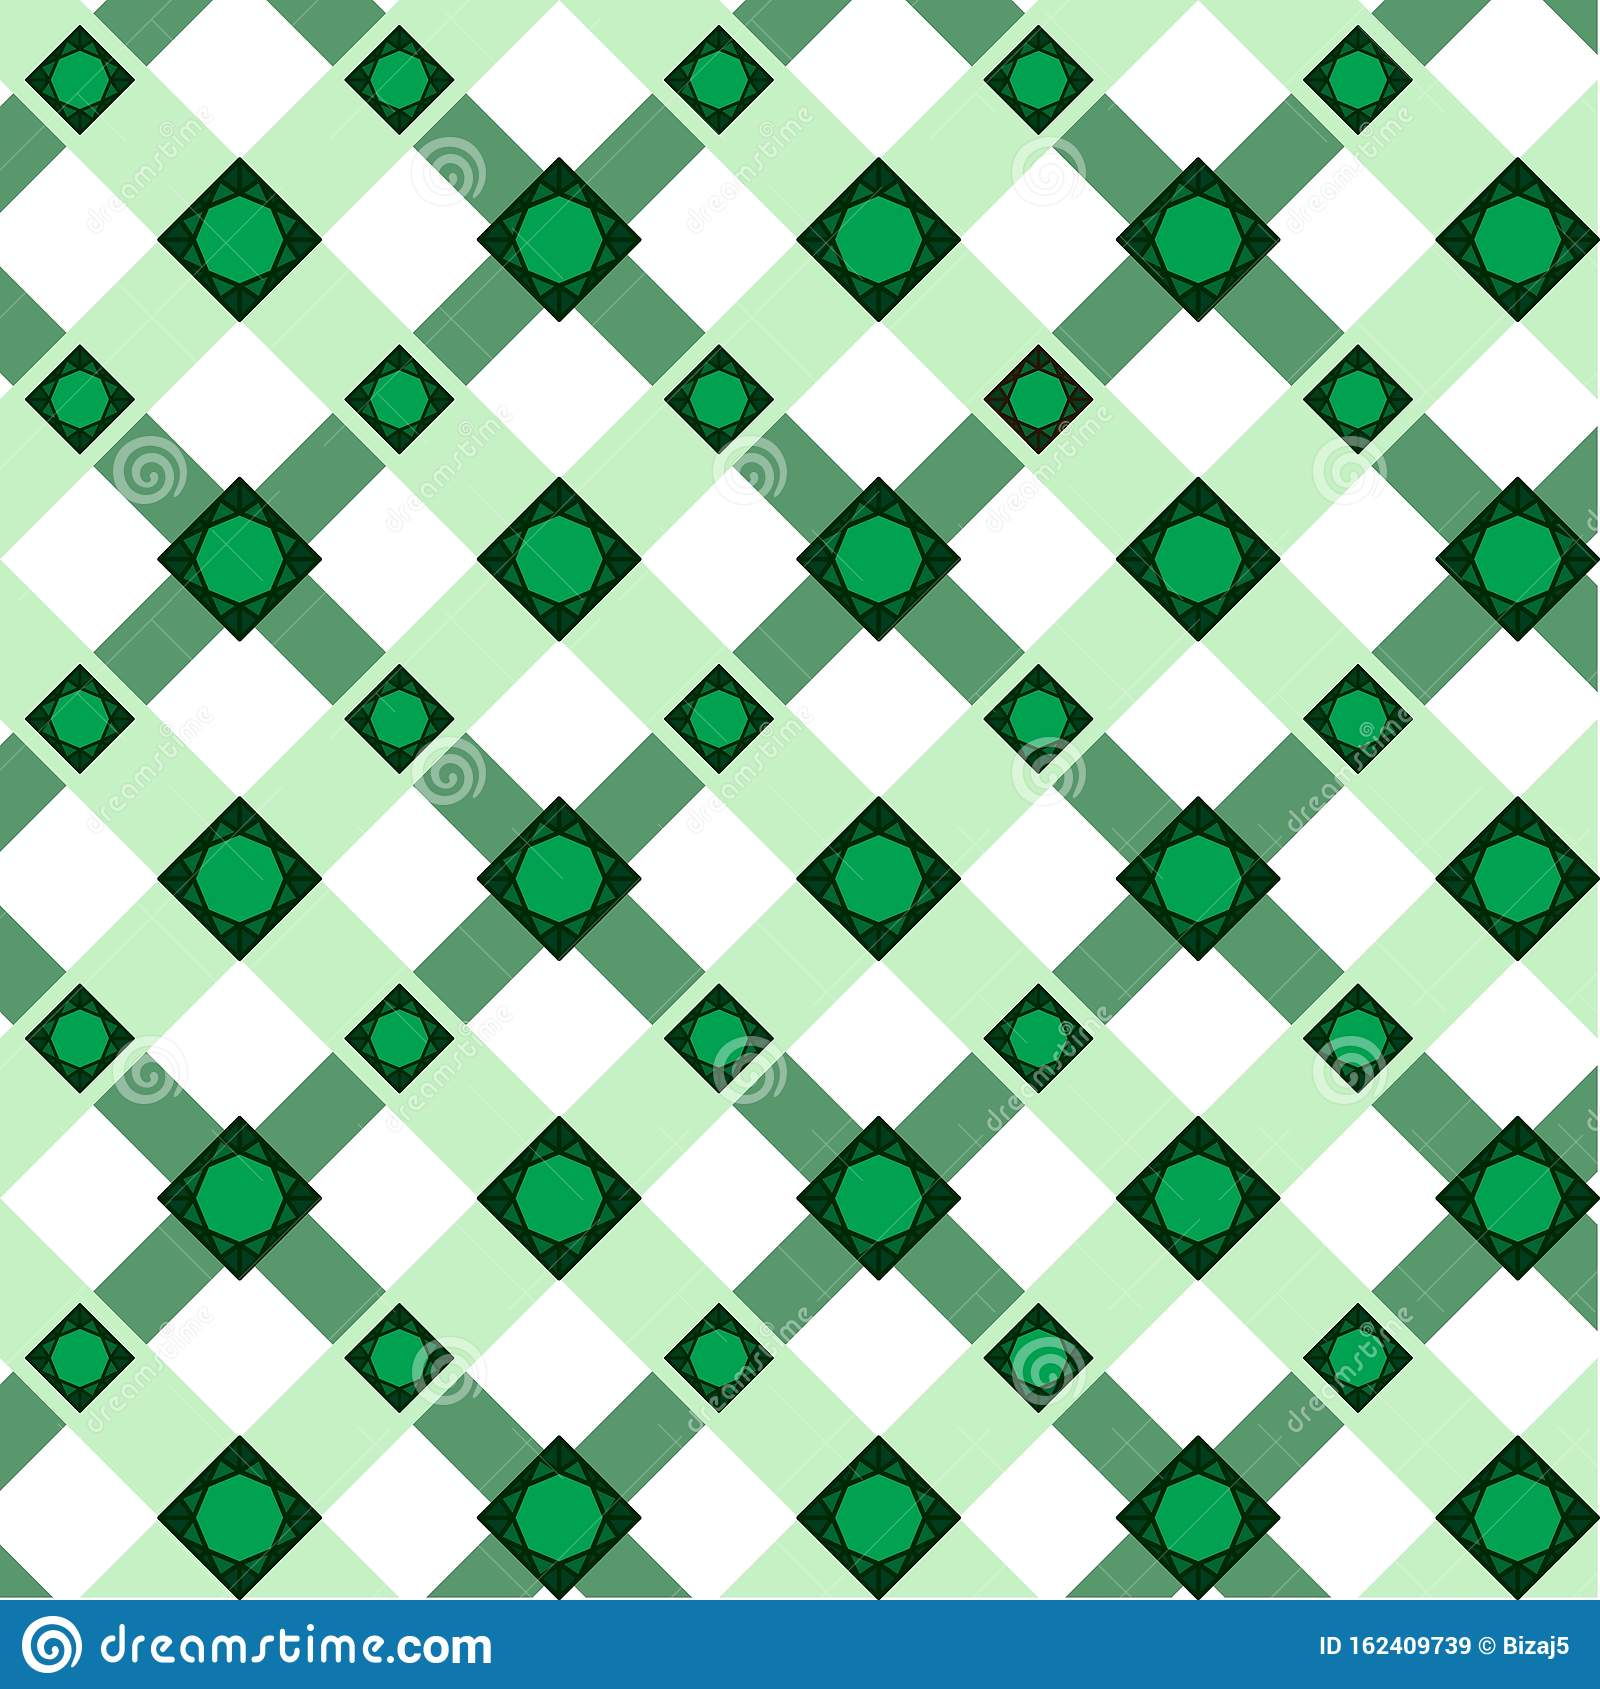 Abstract Vector Geometric Pattern Of Wide Intersecting